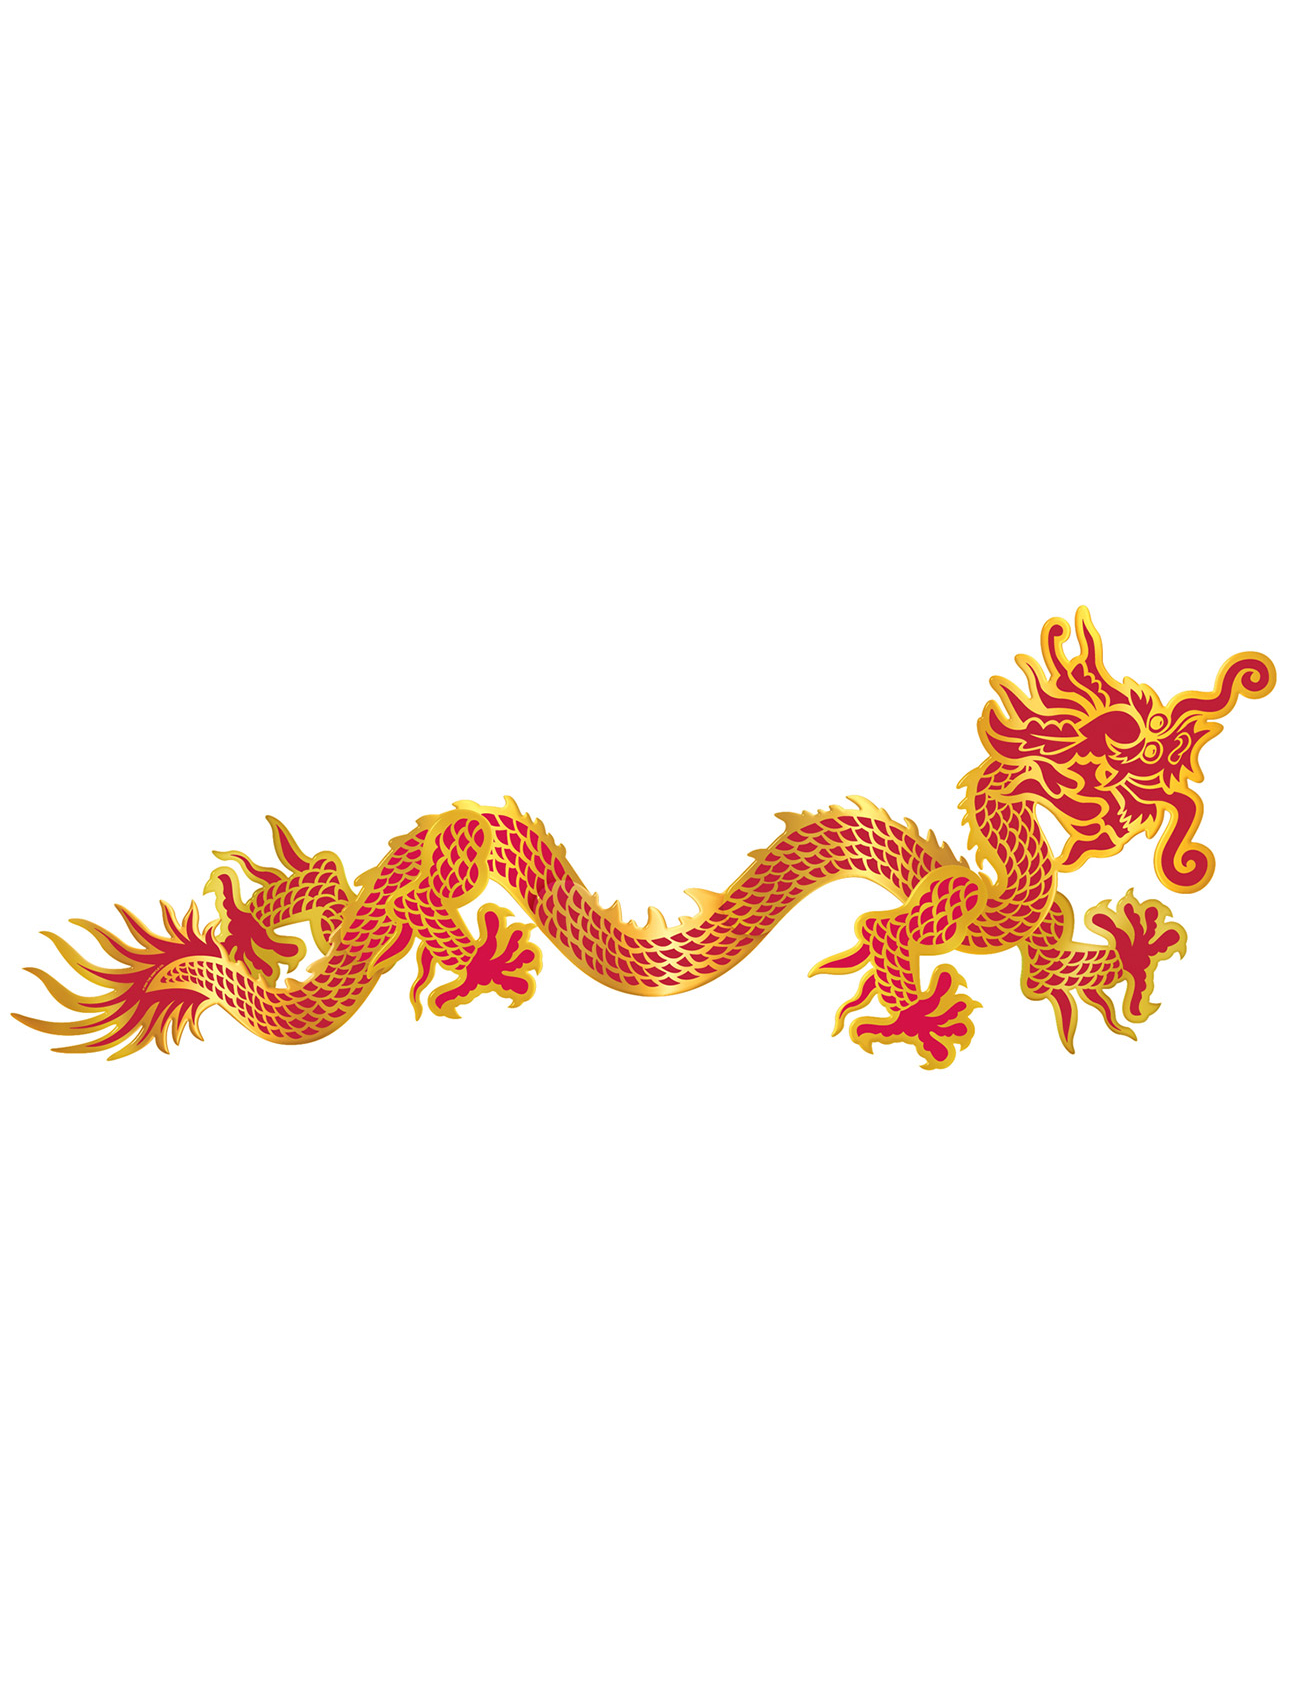 D coration murale dragon rouge et or nouvel an chinois - Decoration nouvel an chinois ...